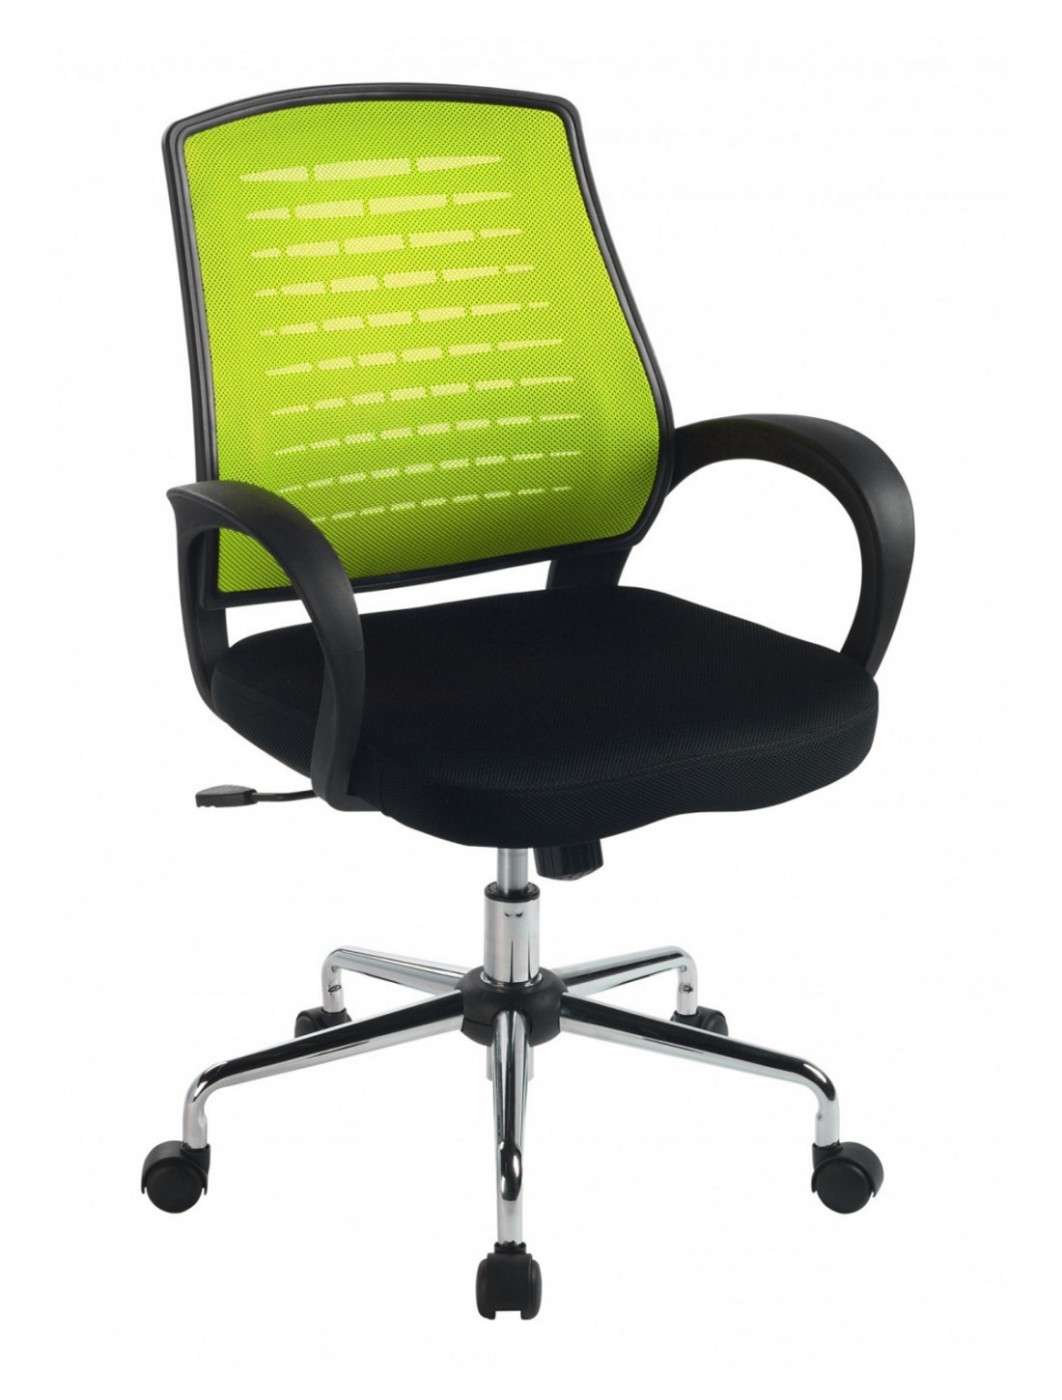 Mesh Office Chair Green Carousel Operator Chair BCM/F1203/GN by Eliza Tinsley